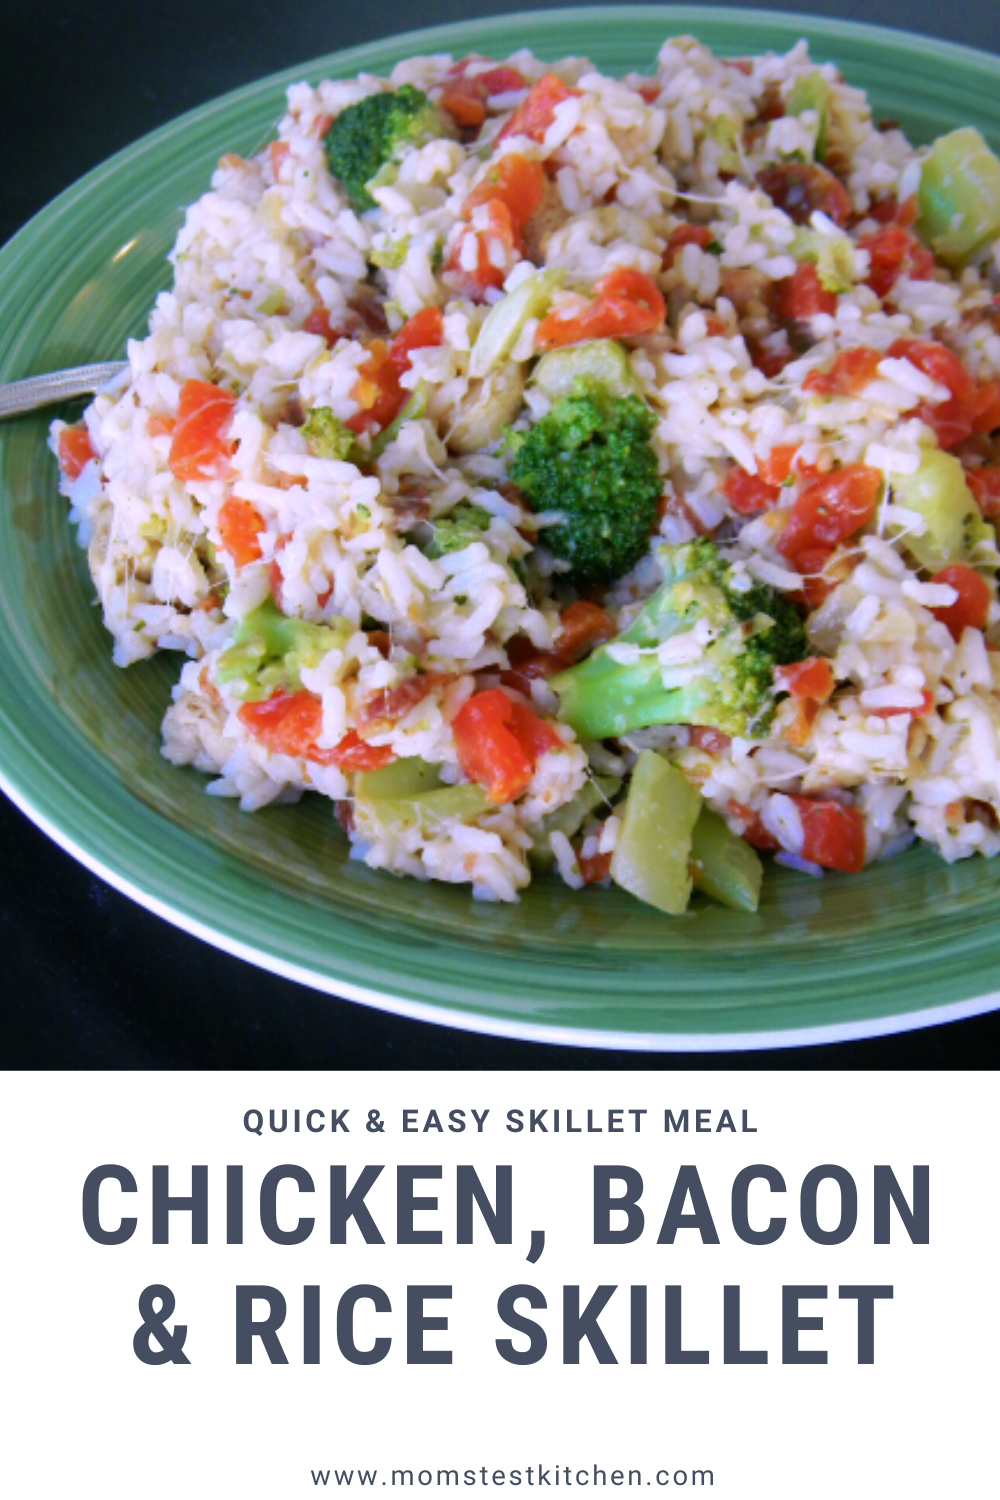 If you like quick and easy recipes, you will LOVE this Chicken Rice Skillet Meal packed with the delicious extras of Broccoli and Bacon!